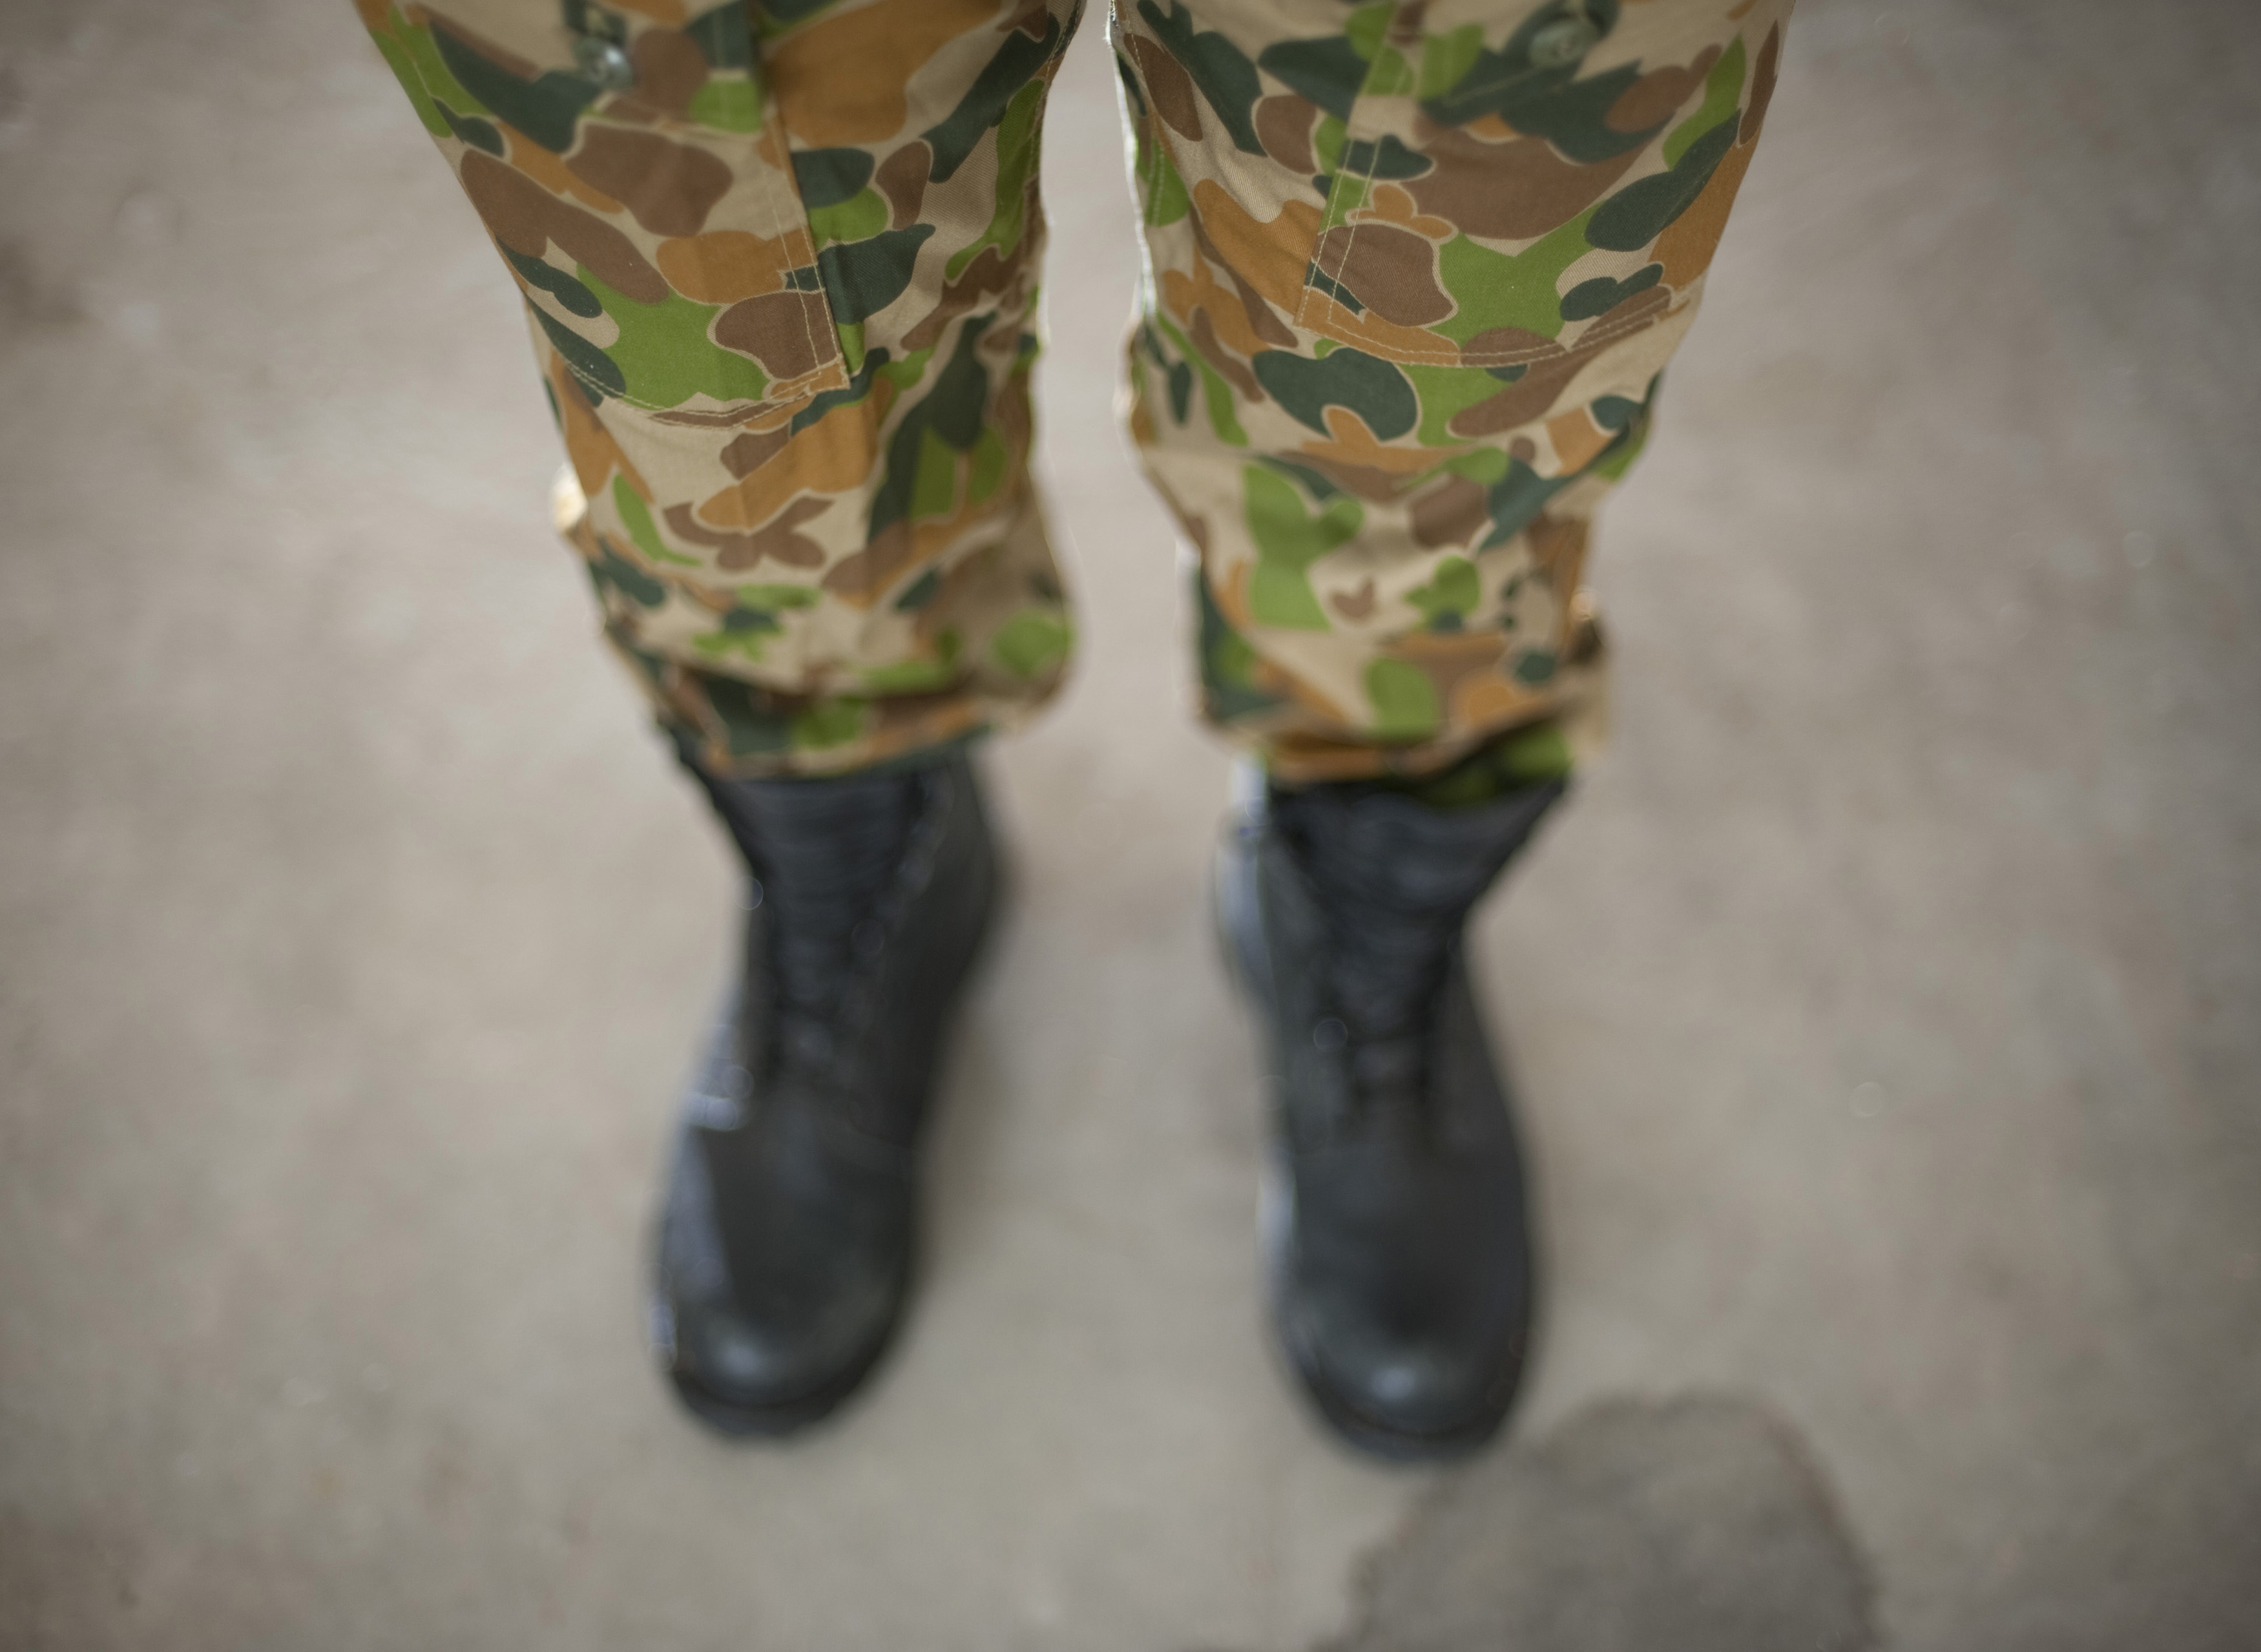 looking down at a soldier wearing army green camoflage pants, the disruptive pattern material is special designed to blend in with a range of background terrains and prevent the solder from being detected